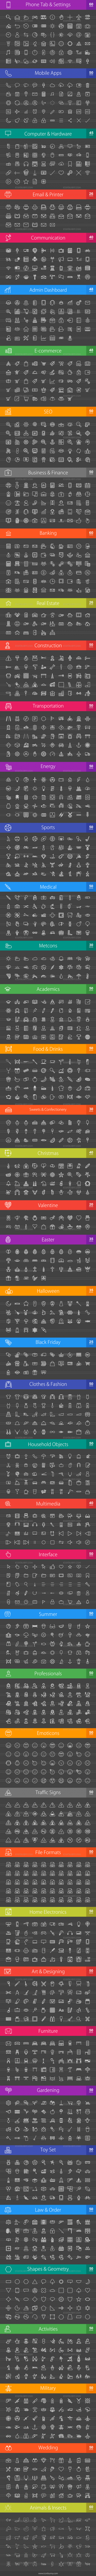 2070 Line inverted Icons Bundle - Preview - IconBunny